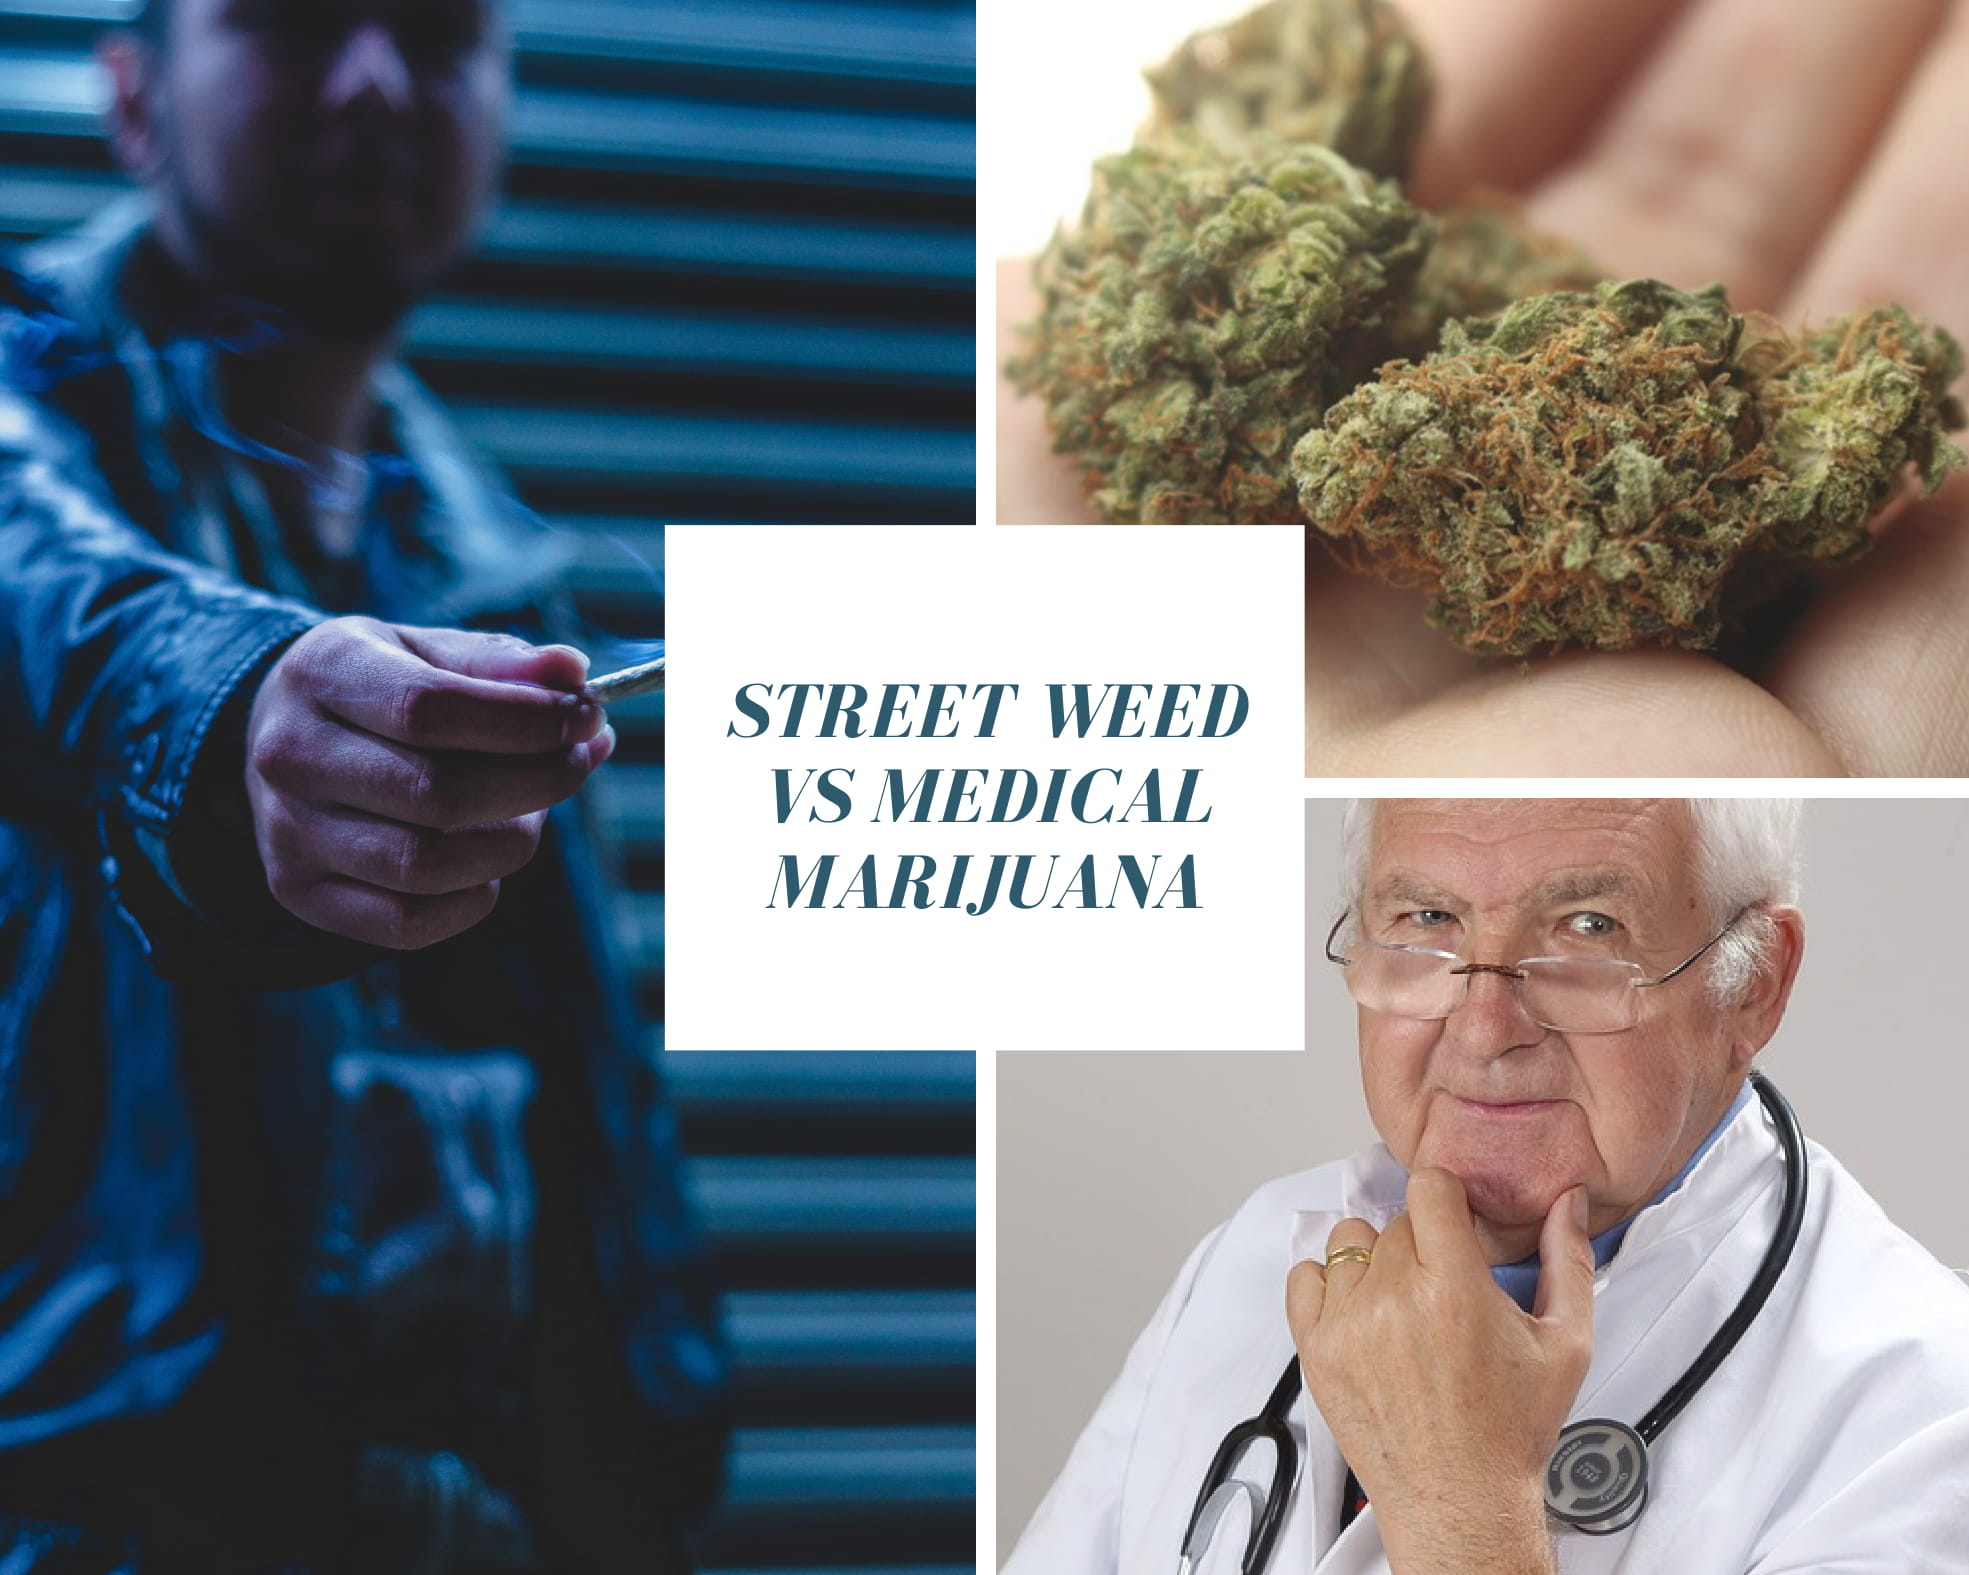 Street Weed vs Medical Marijuana